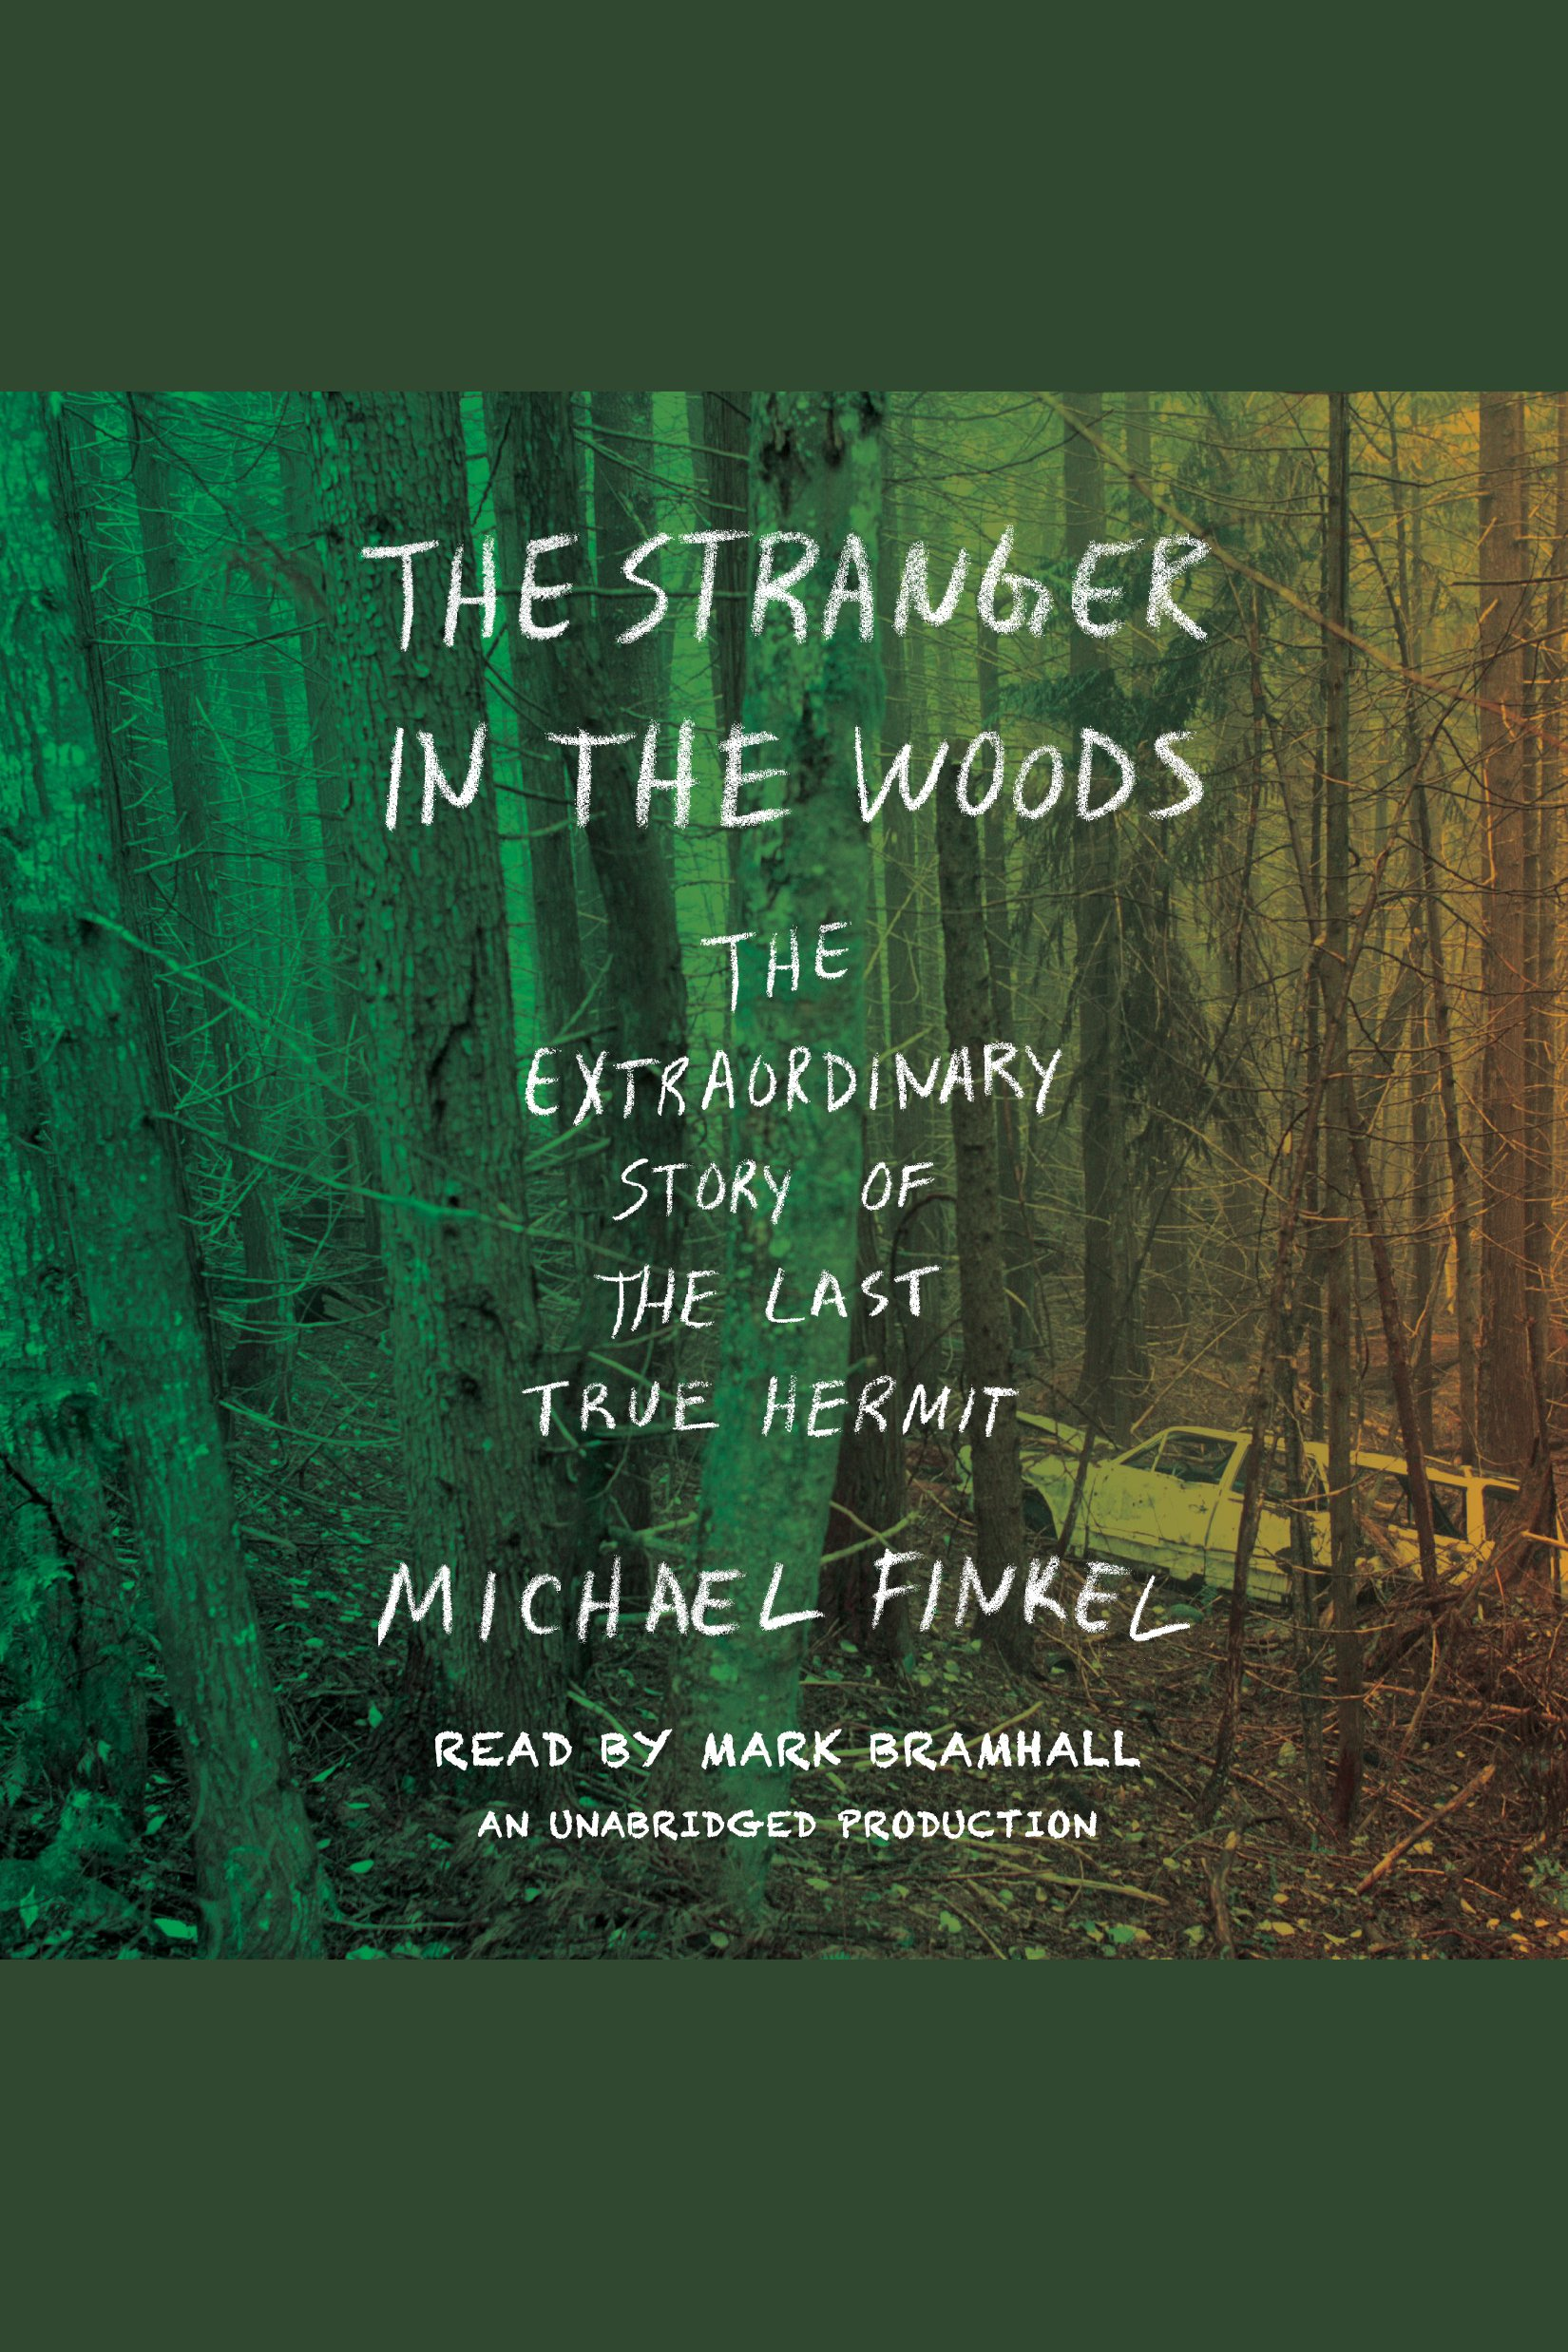 Stranger in the Woods, The The Extraordinary Story of the Last True Hermit